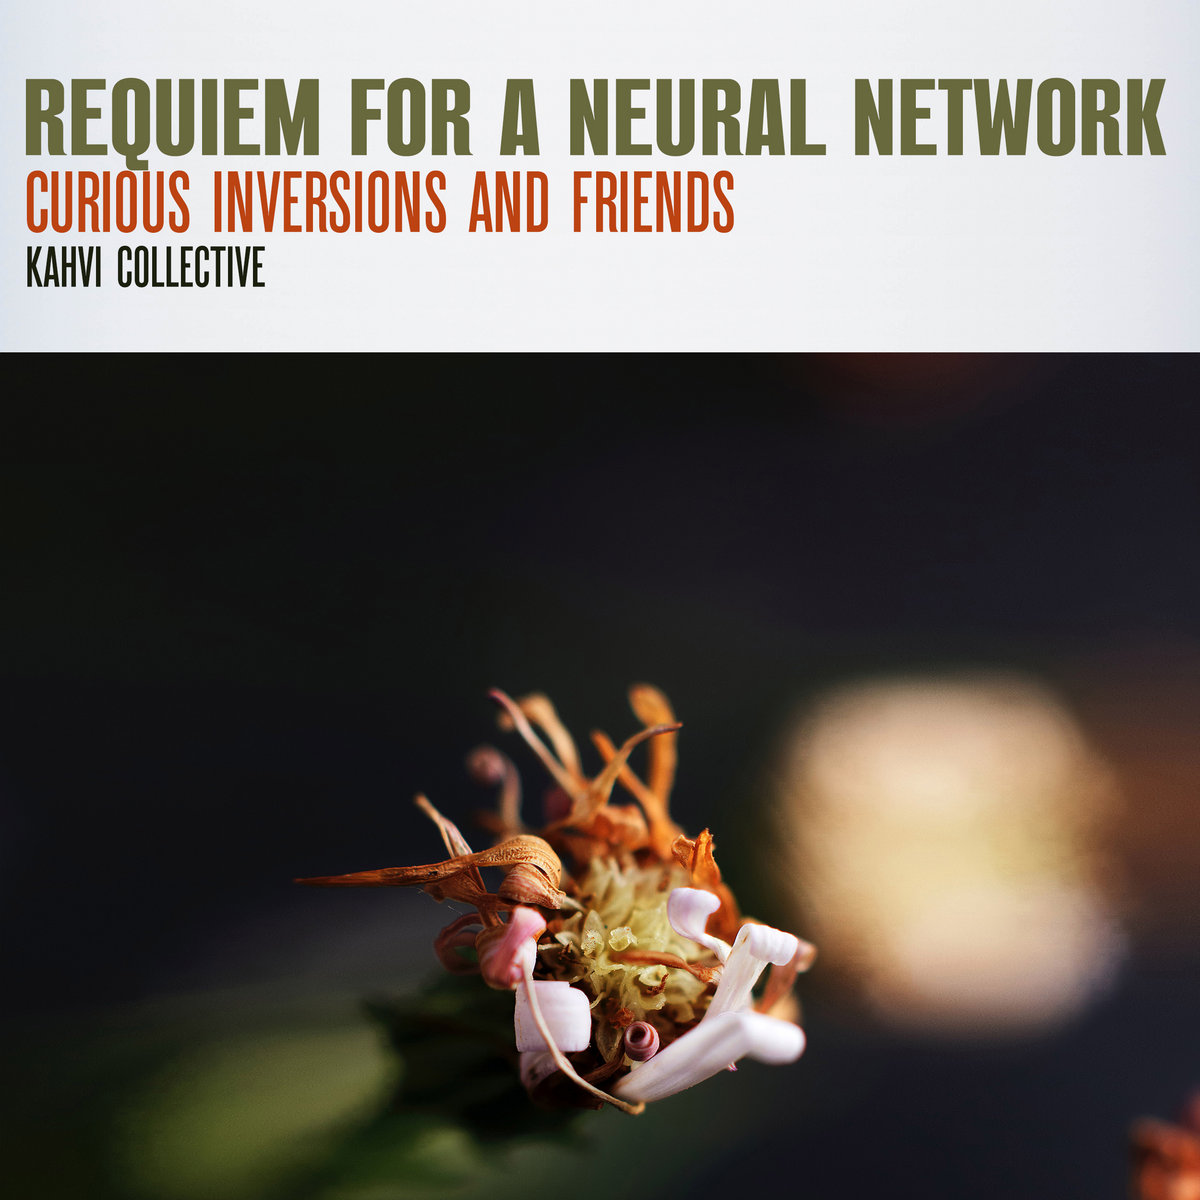 Curious Inversions and Friends – Requiem for a Neural Network